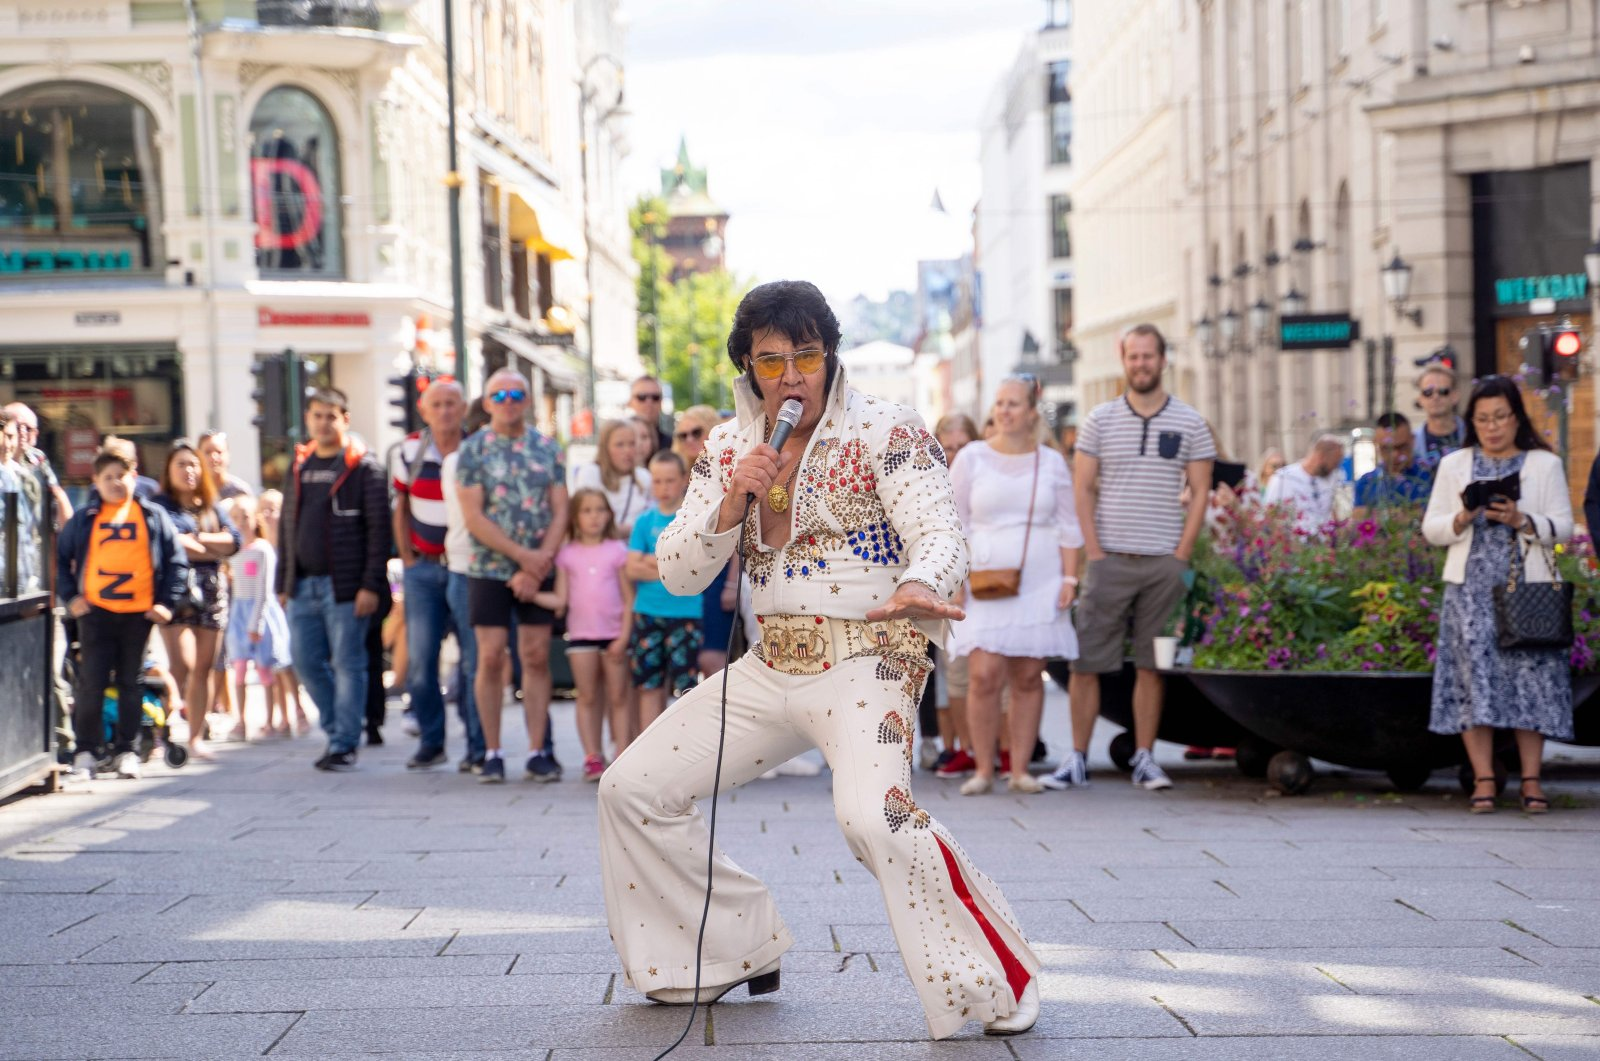 Norwegian artist Kjell Elvis (Kjell Henning Bjornestad) performs in central Oslo in an attempt to beat the record of the world's longest Elvis Presley singing marathon in Oslo, Norway on July 23, 2020. (AFP Photo)